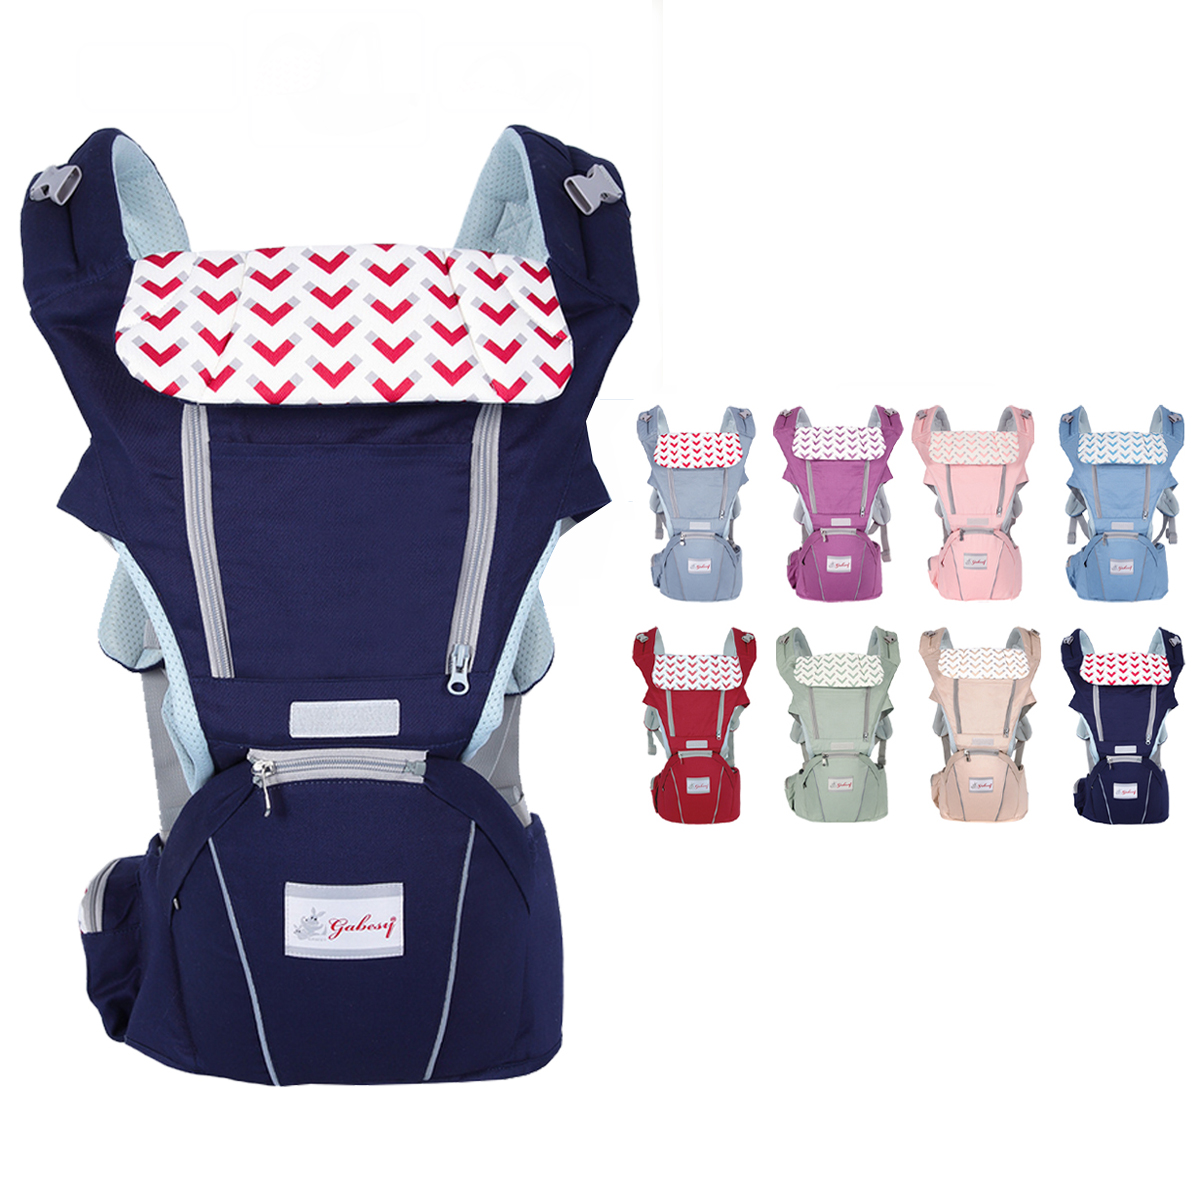 0-36 Months 3 in 1 Breathable Front Baby Carriers Waist Stool In